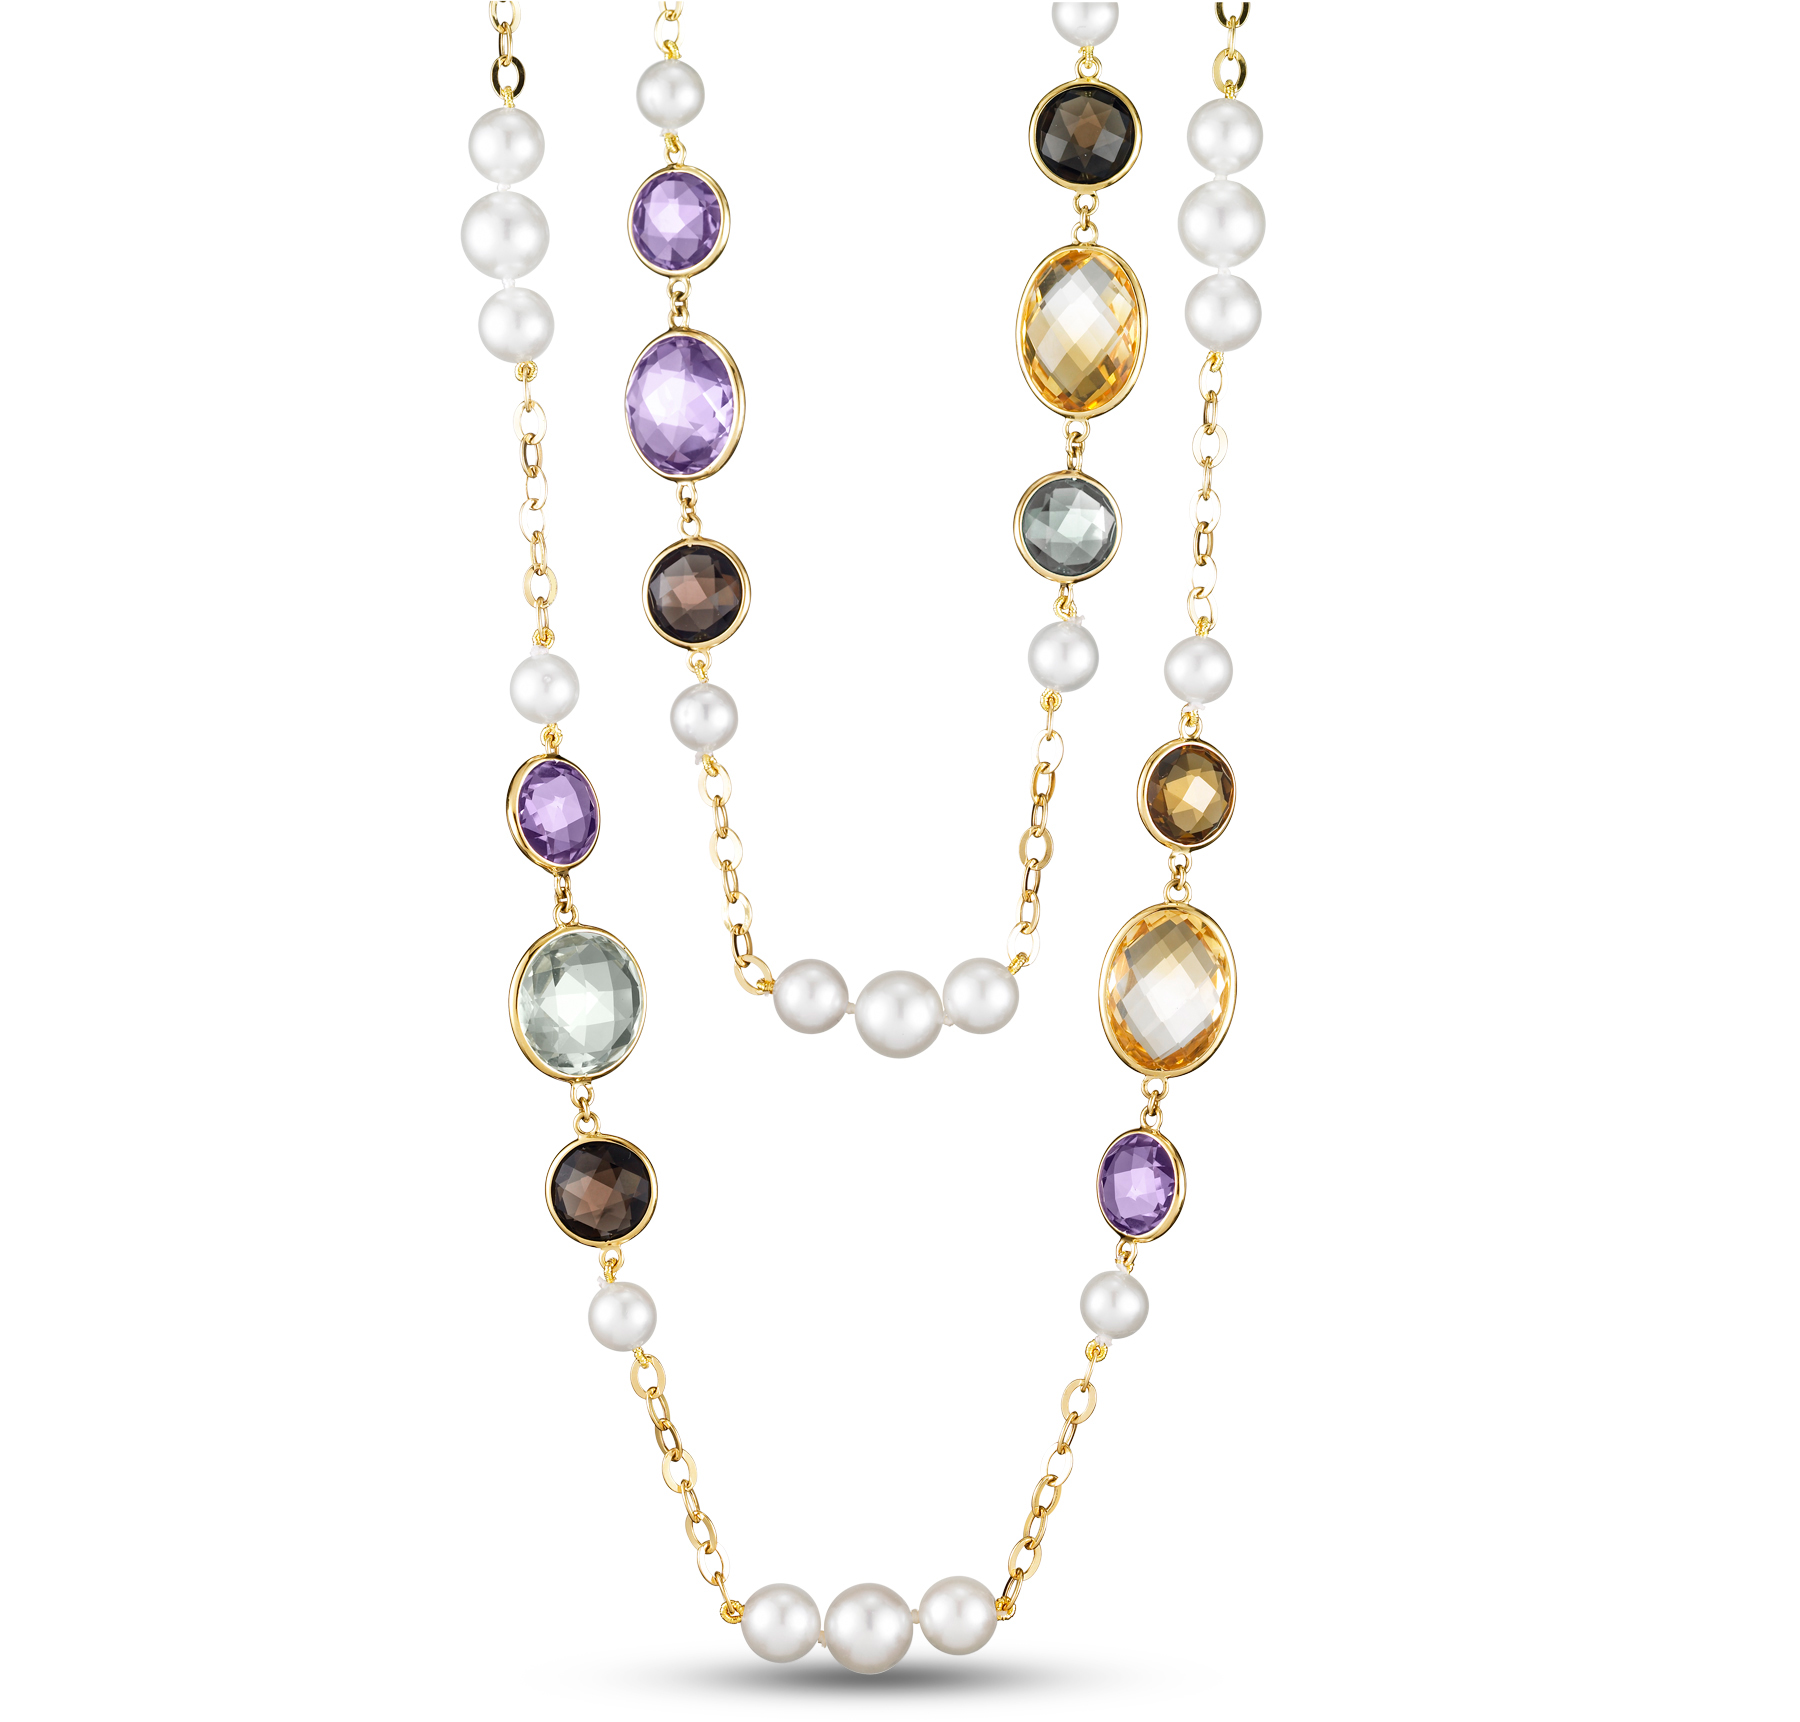 Mastoloni Prism pearl and gemstone necklace | JCK On Your Market